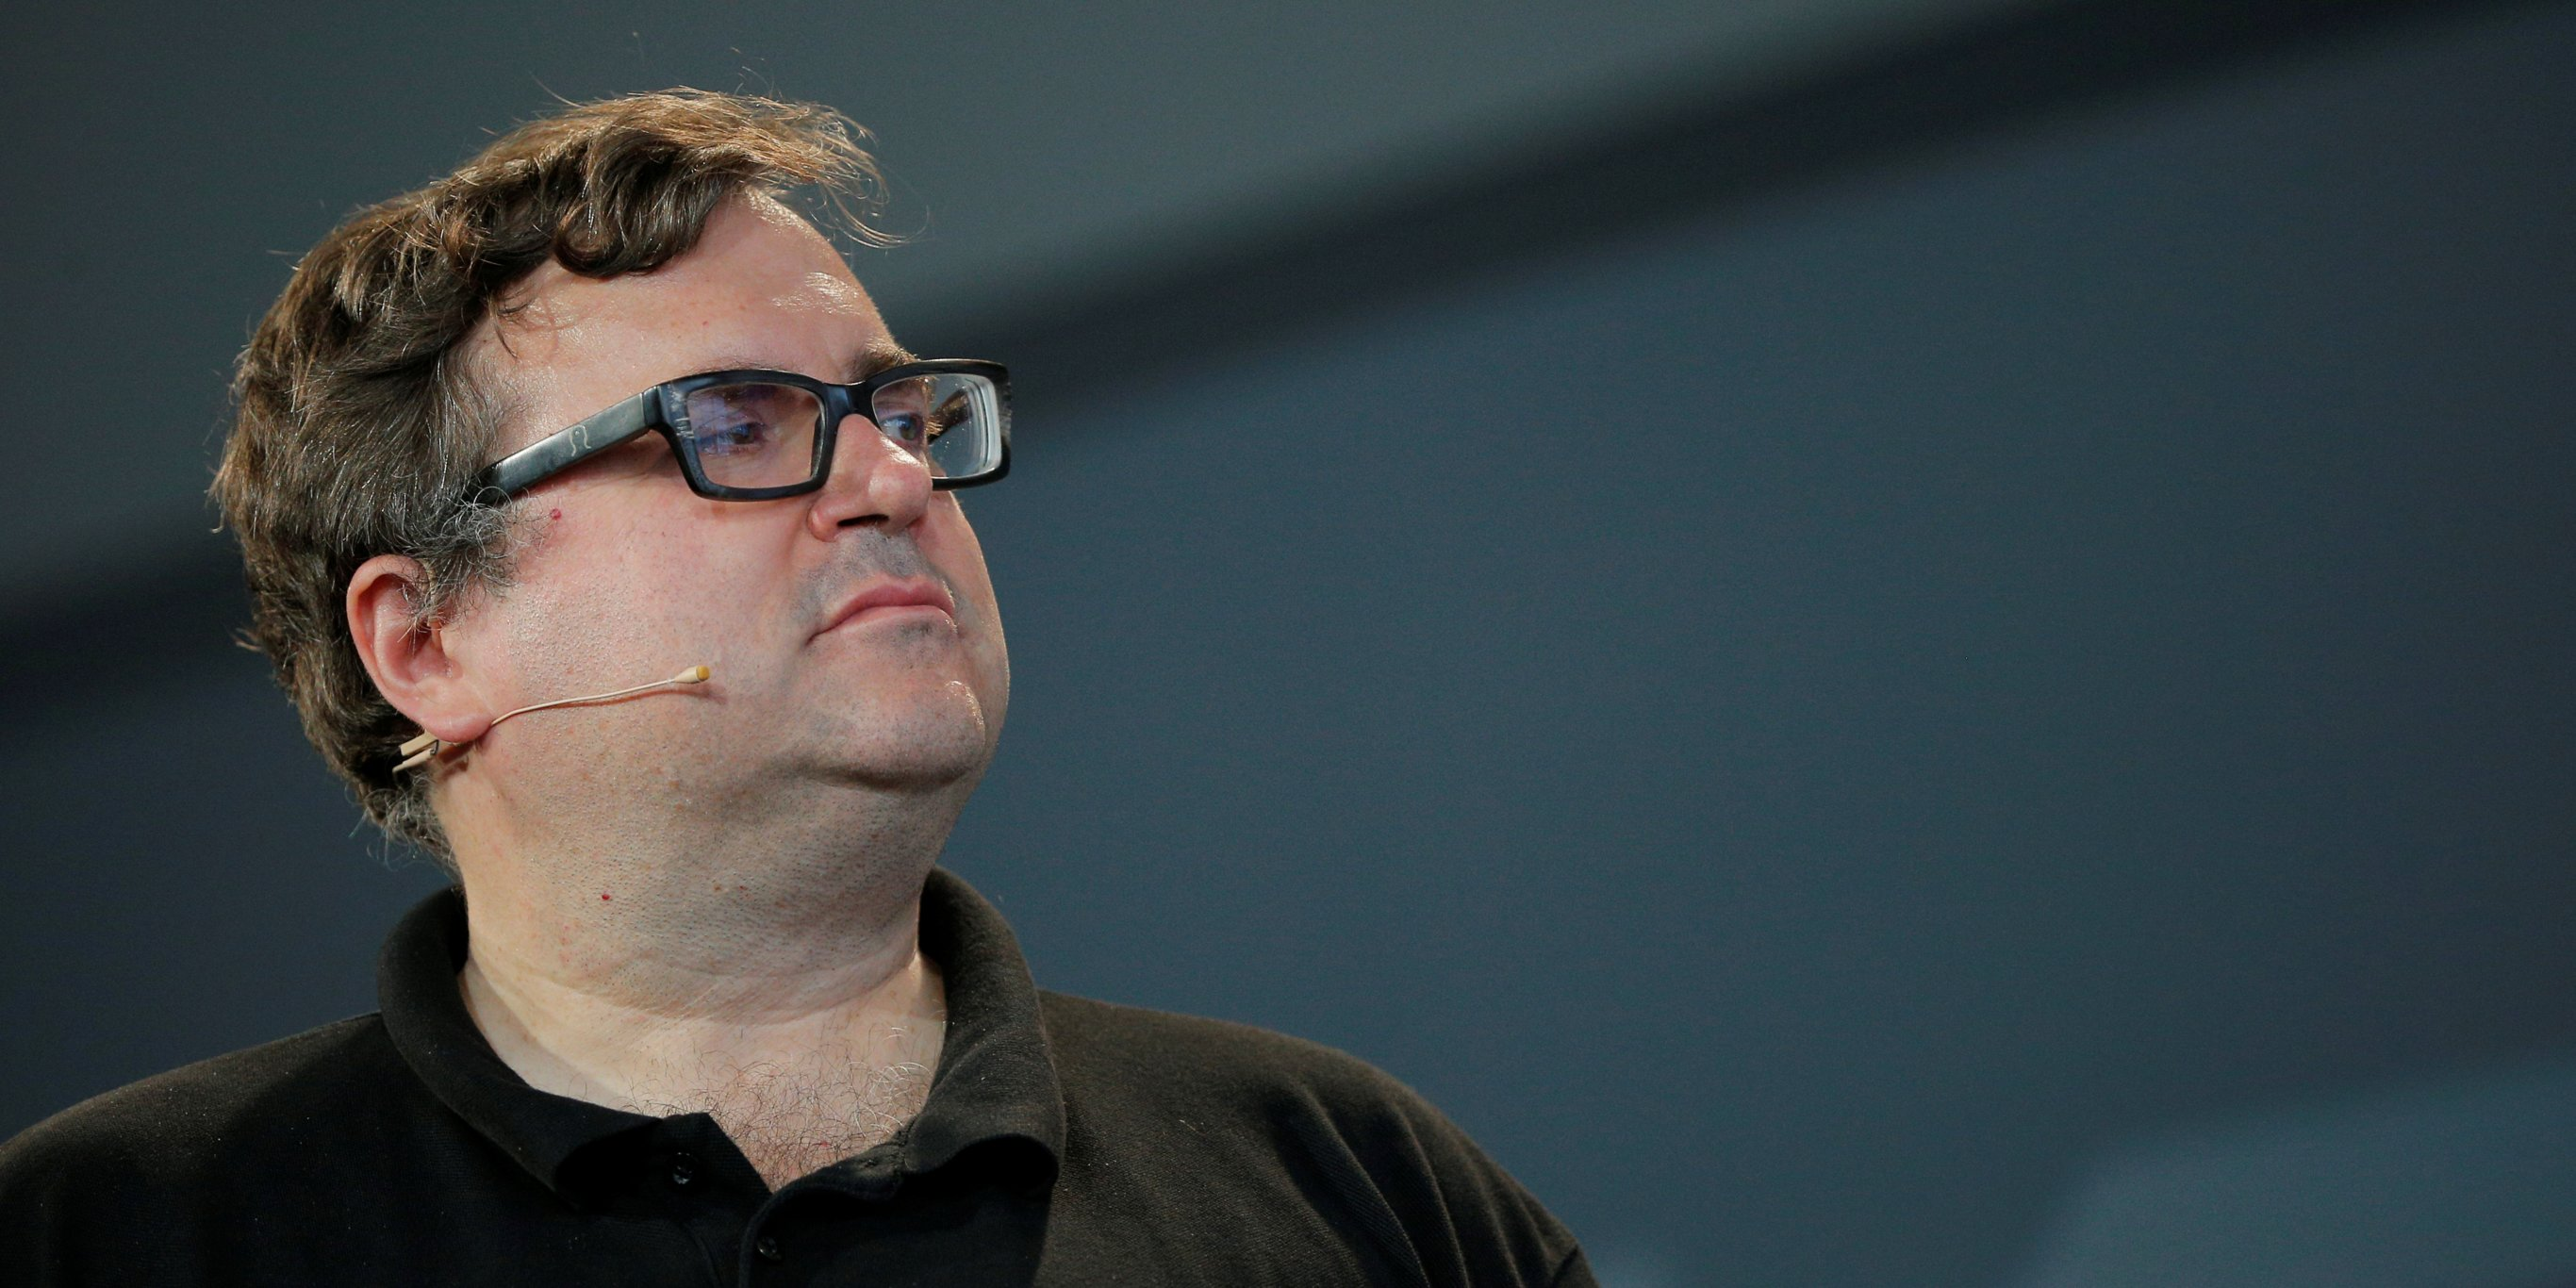 LinkedIn founder Reid Hoffman defended a former MIT official who accepted donations from Jeffrey Epstein